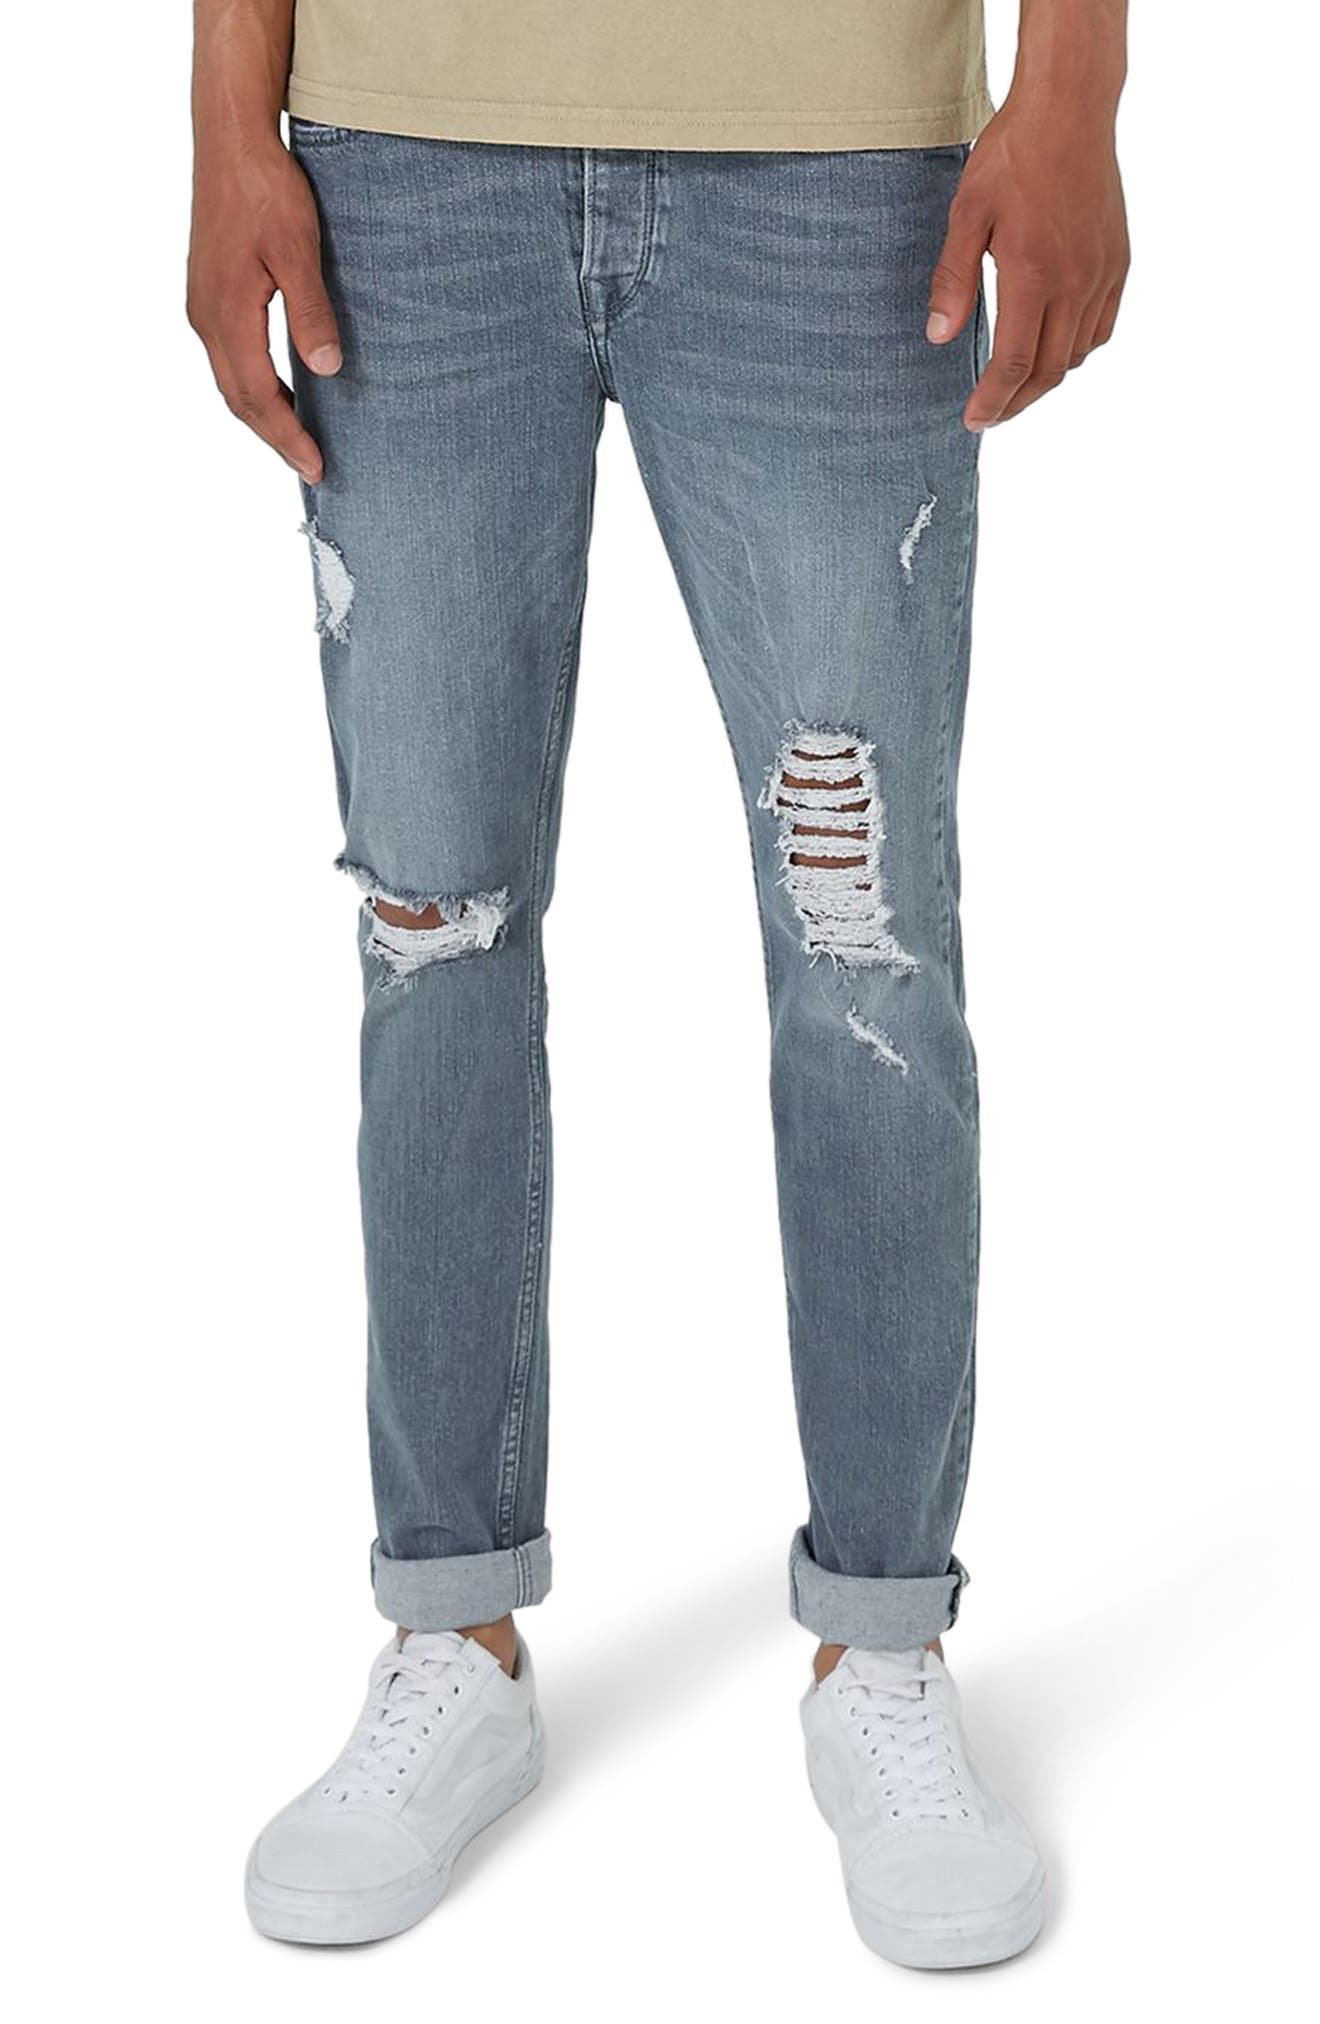 Extreme Rip Stretch Jeans,                             Main thumbnail 1, color,                             020